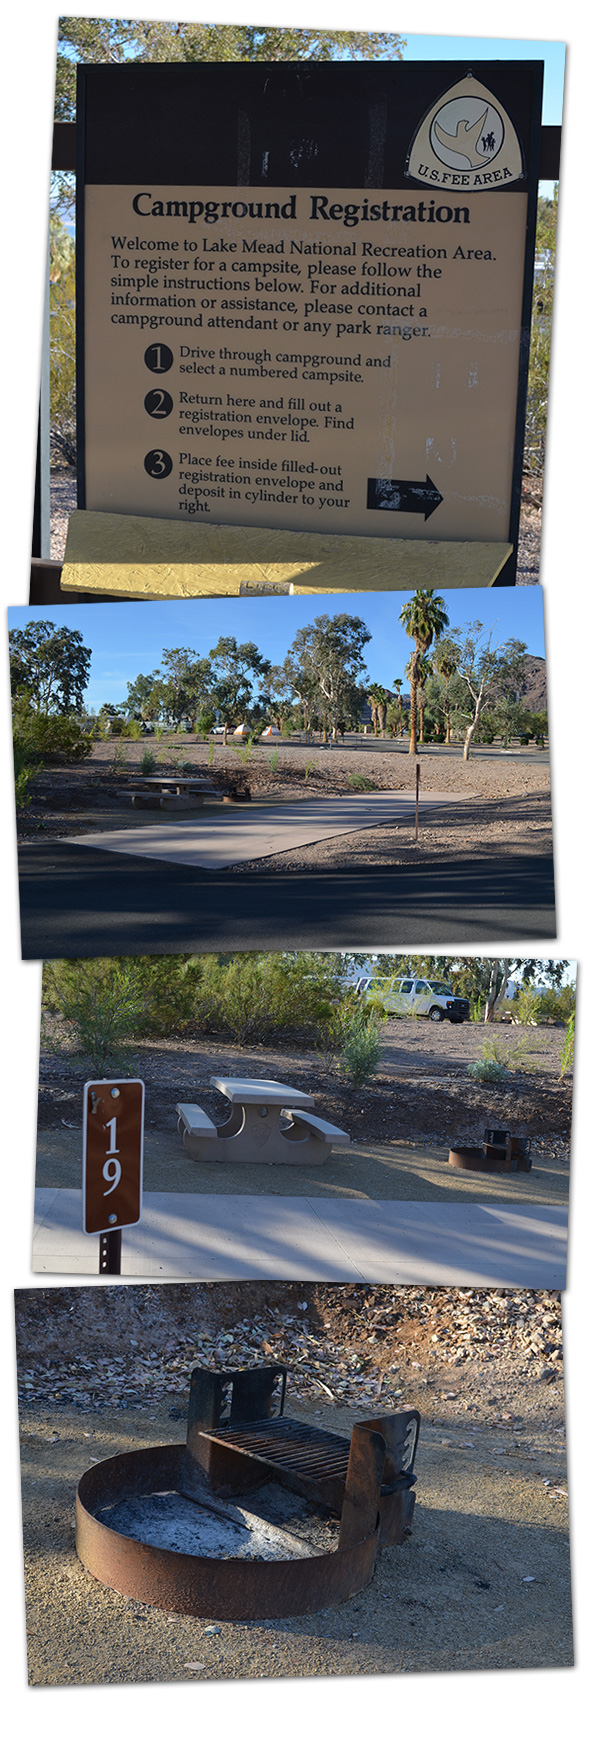 Camping at Lake Mead Recreation Area